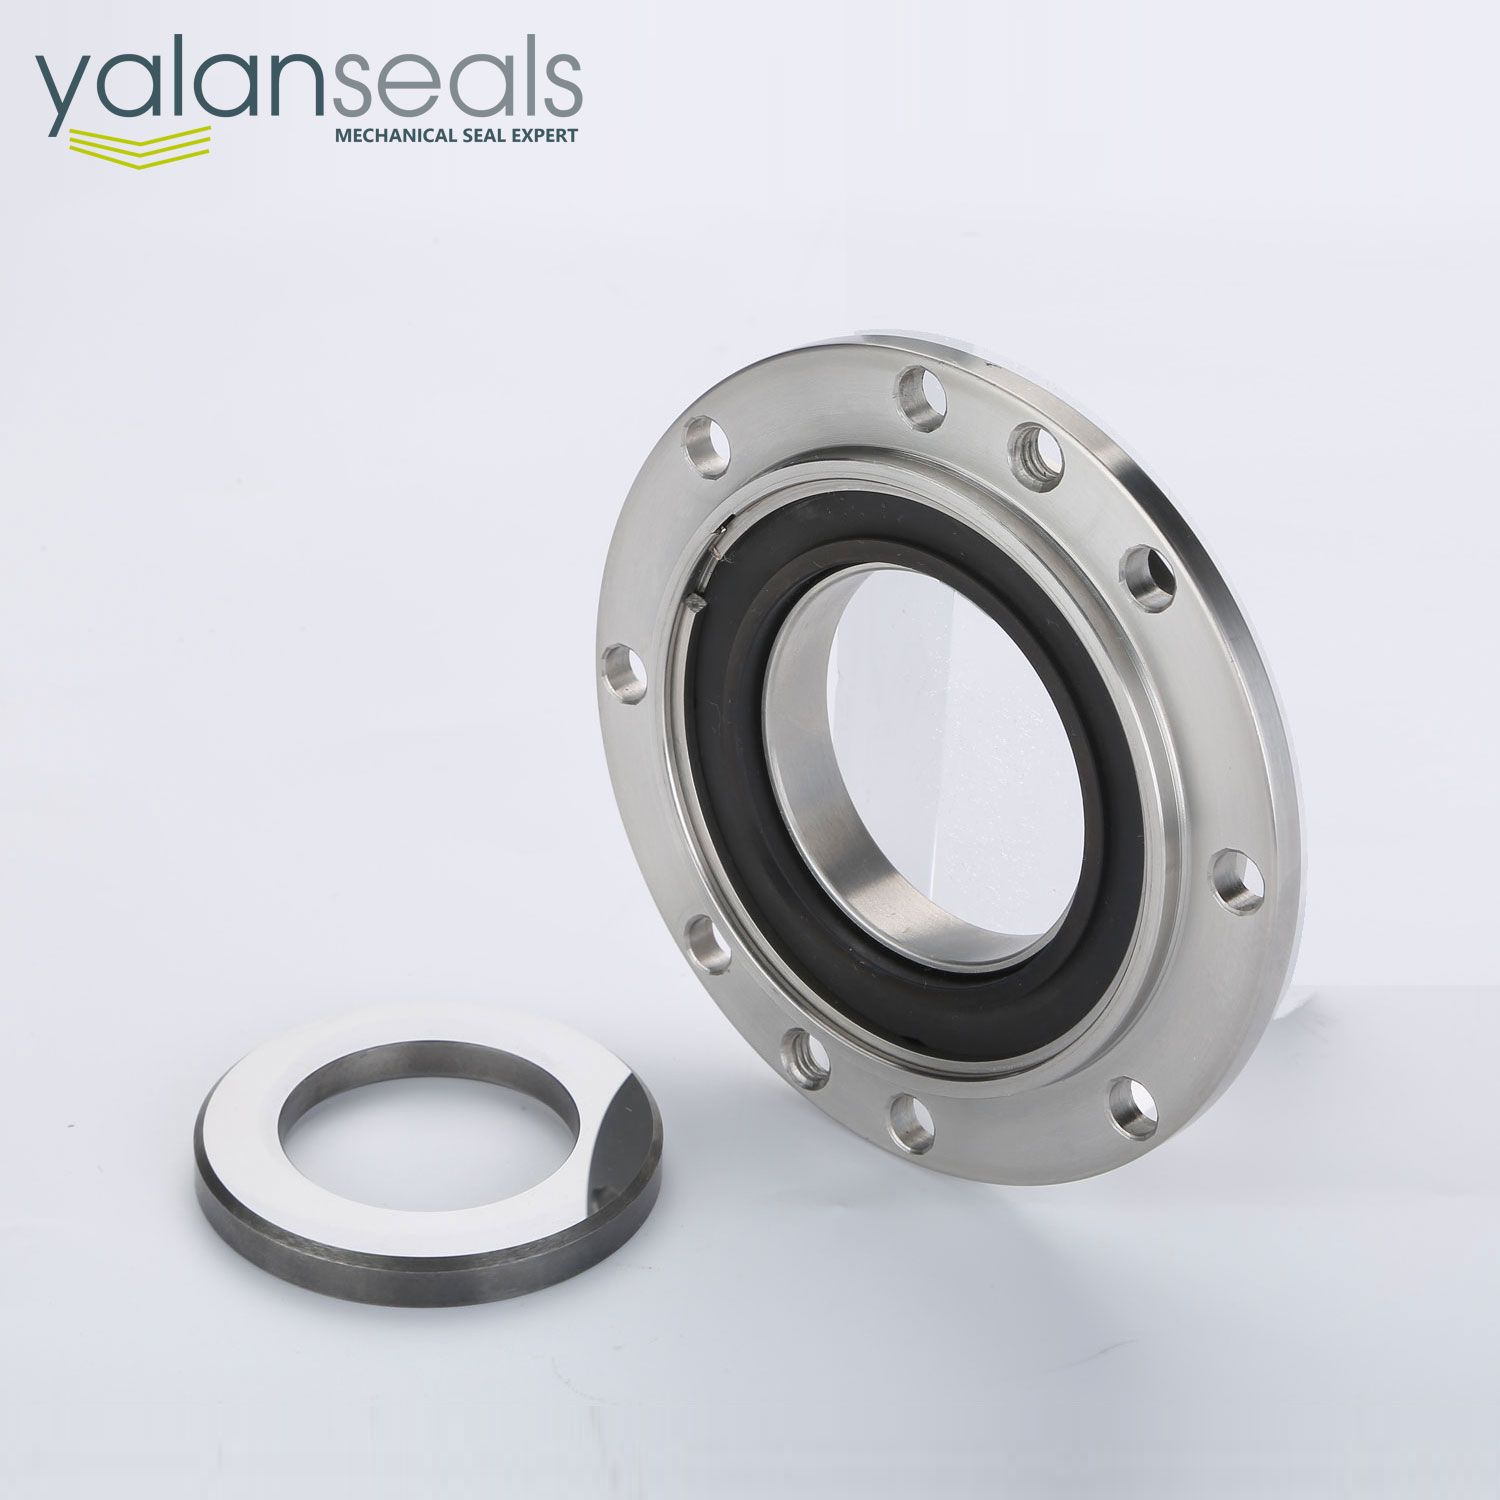 08J-08D Mechanical Seal for Roots Blowers, High Speed Pumps and Gearboxes